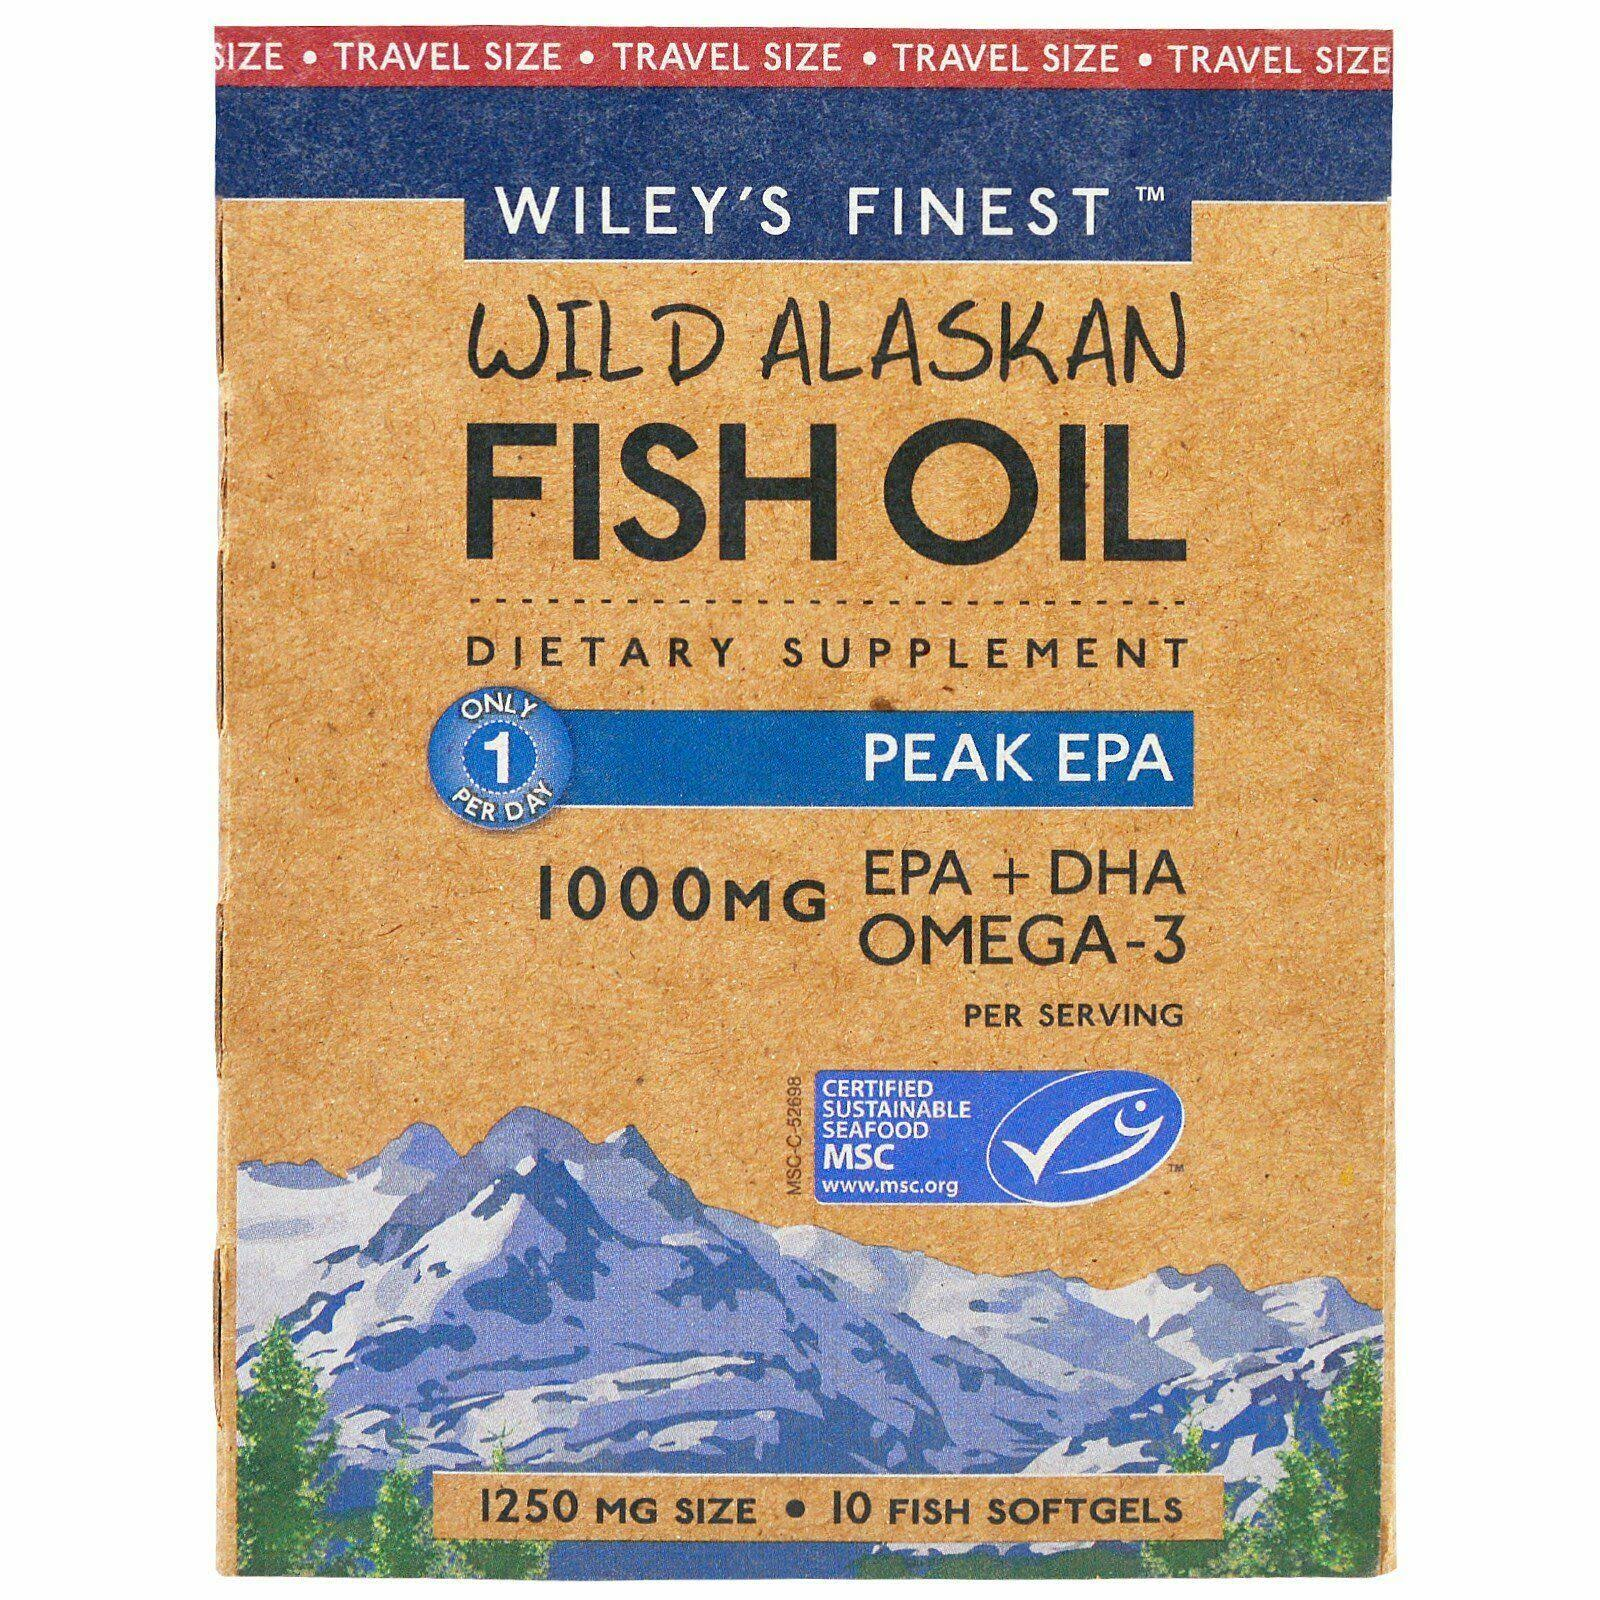 Wiley's Finest Wild Alaskan Fish Oil Peak EPA EPA + DHA Omega-3 Per Softgels - 1000mg